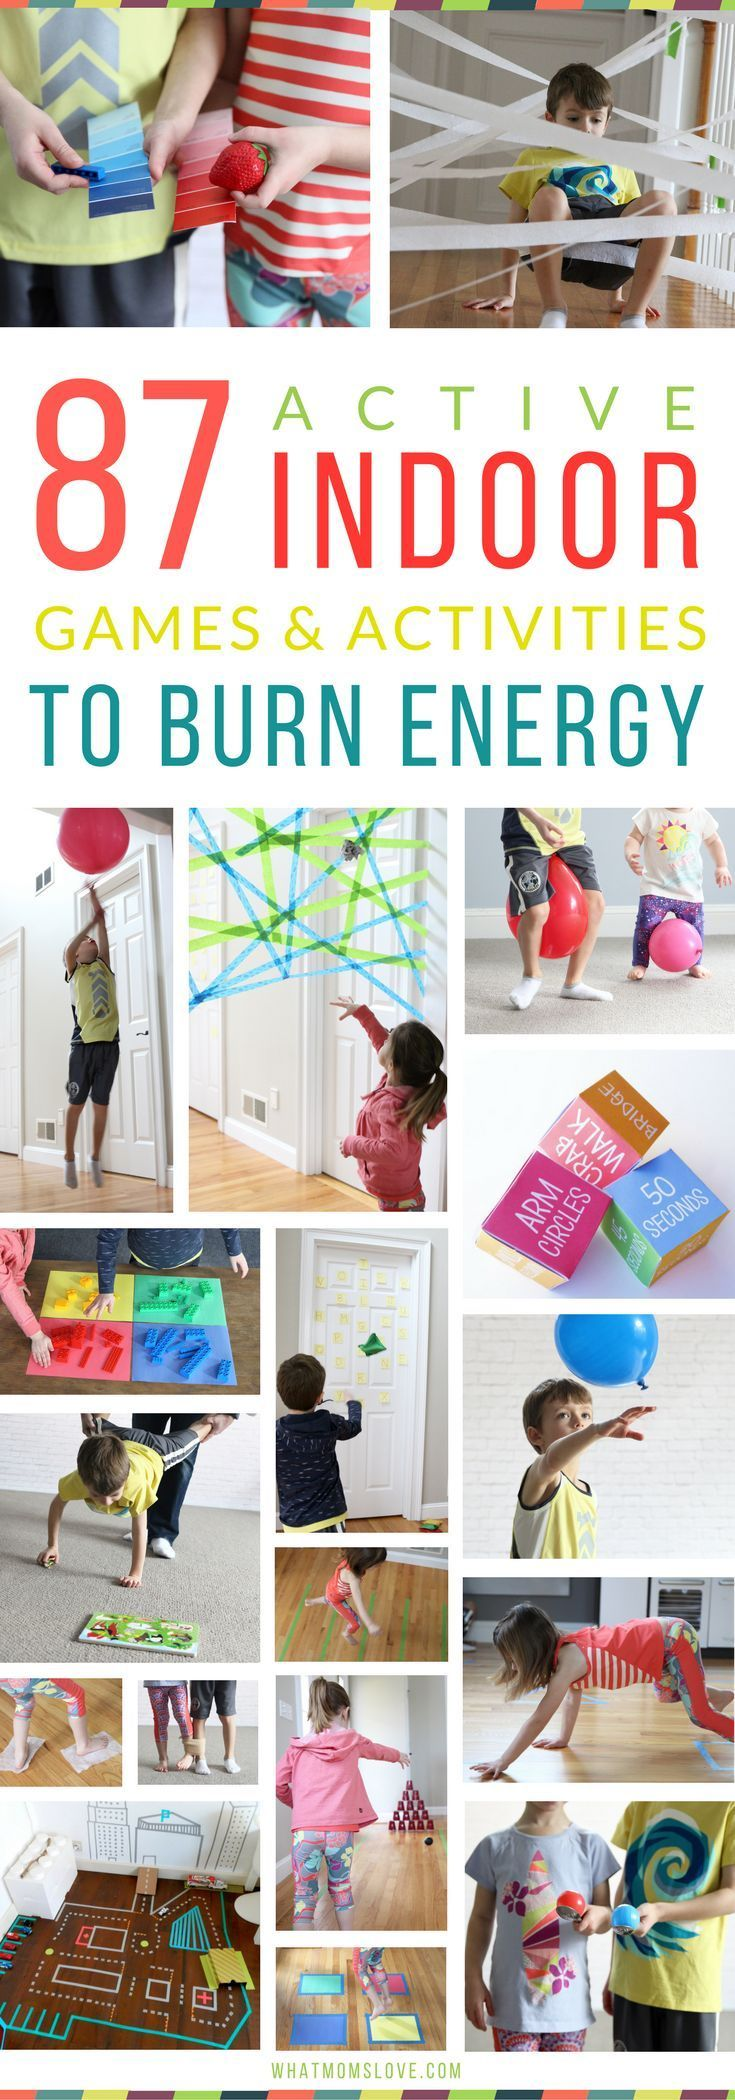 Best Active Indoor Activities For Kids | Fun Gross Motor Games and Creative Ideas For Winter (snow days!), Spring (rainy days!) or for when Cabin Fever strikes | Awesome Boredom Busters and Brain Breaks for high energy Toddlers, Preschool and beyond - see the full list at http://whatmomslove.com